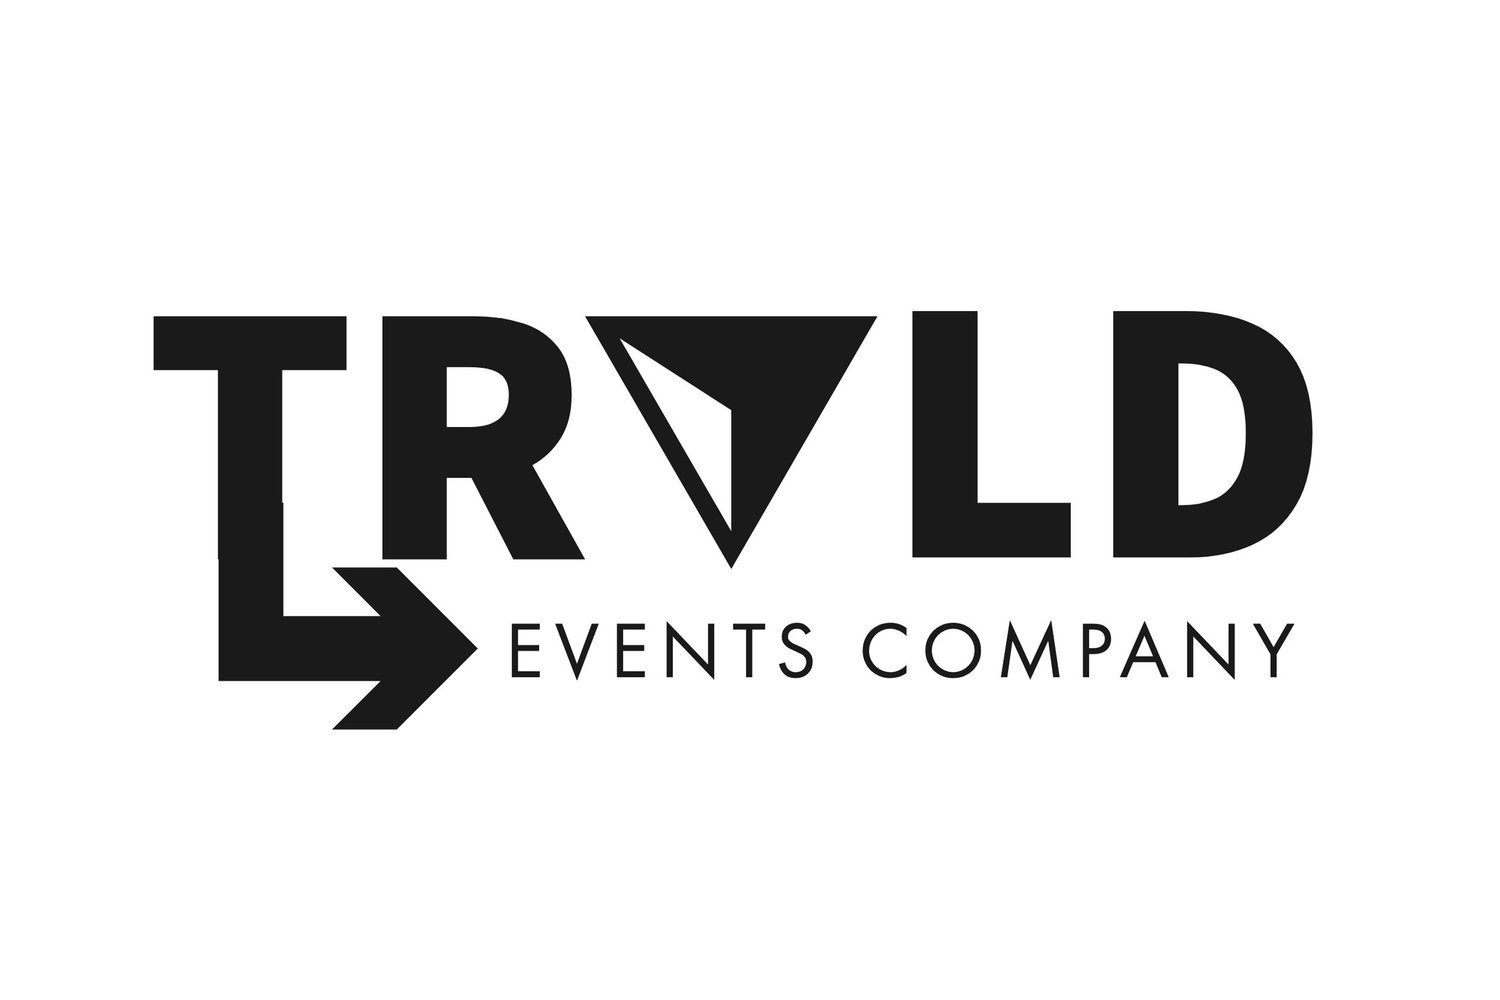 Traveled Events Company